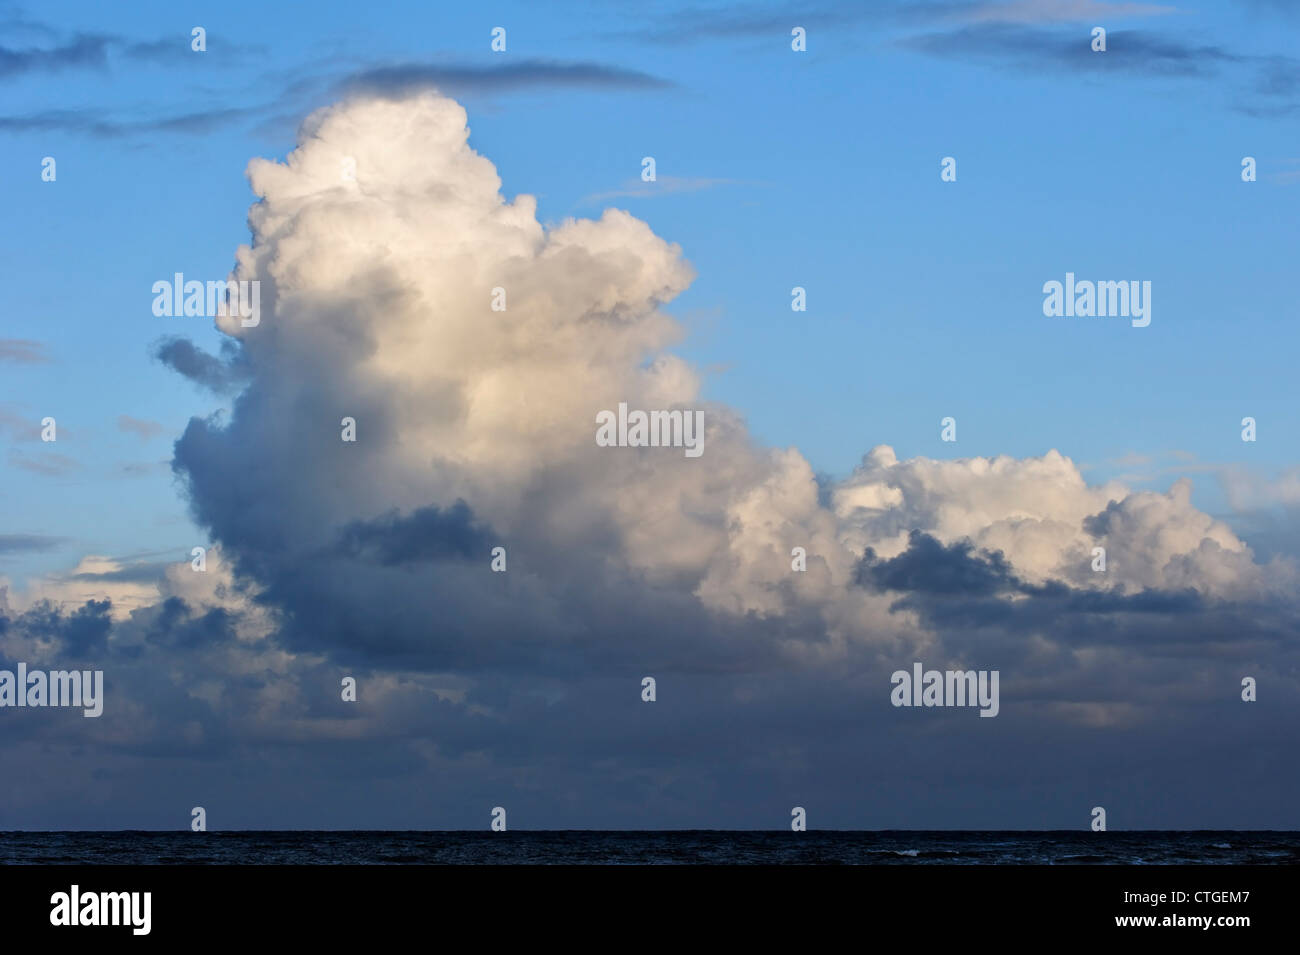 Cumulus congestus / towering cumulus clouds over the sea formed by the development of cumulus mediocris - Stock Image